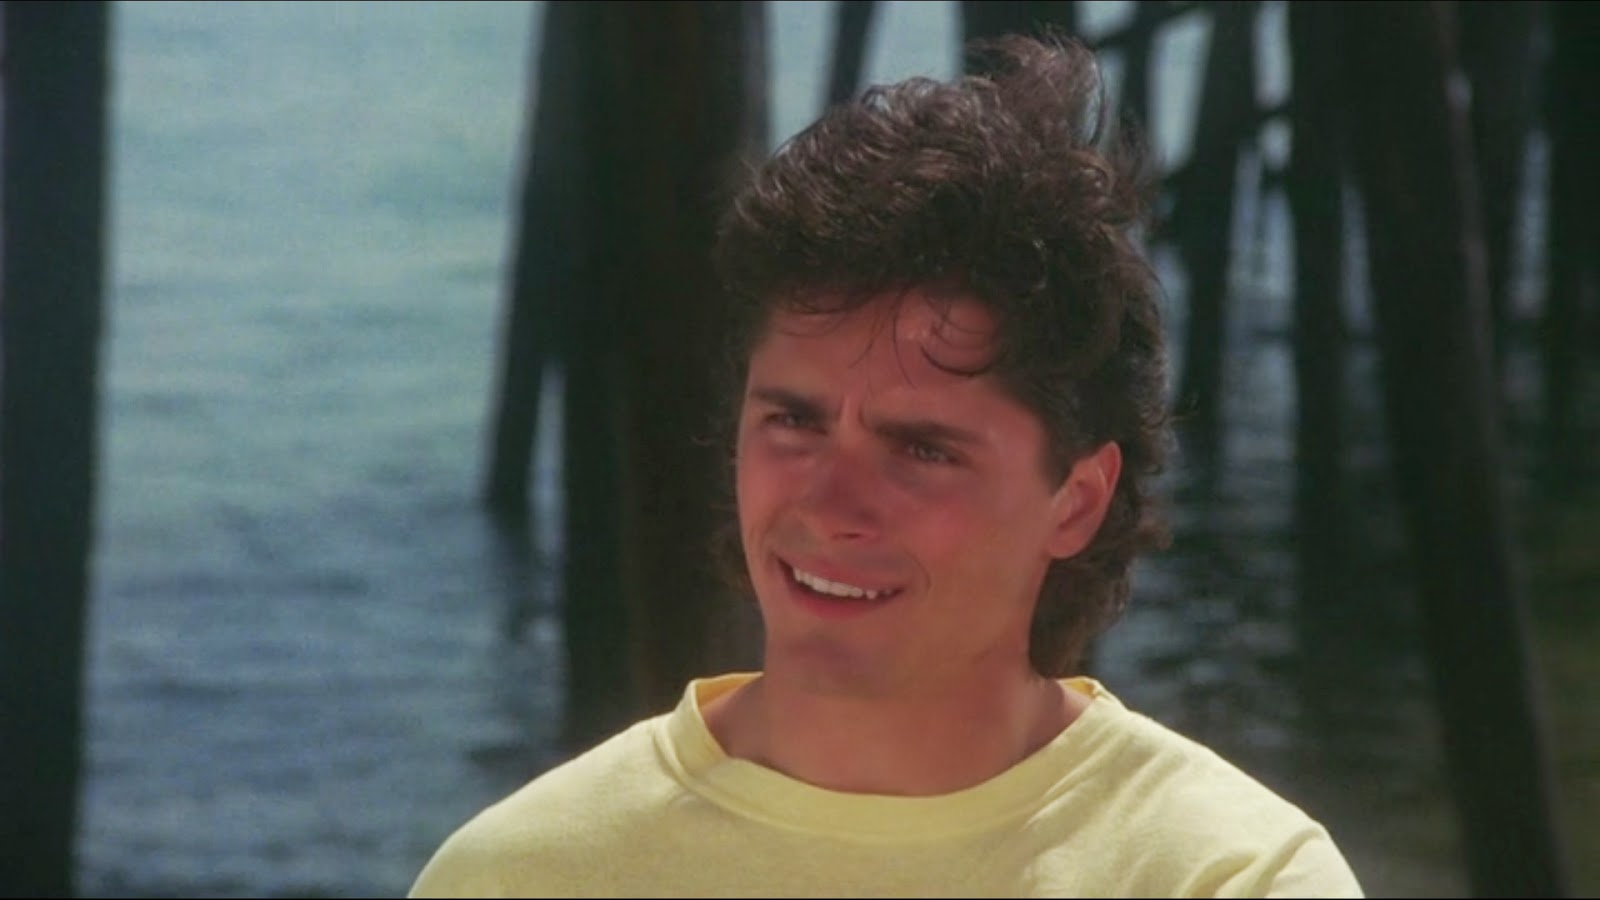 billy warlock facebookbilly warlock baywatch, billy warlock 2015, billy warlock imdb, billy warlock net worth, billy warlock returning to days, billy warlock twitter, billy warlock height, billy warlock and julie pinson, billy warlock wife, billy warlock gay, billy warlock instagram, billy warlock society, billy warlock general hospital, billy warlock facebook, billy warlock and marcy walker